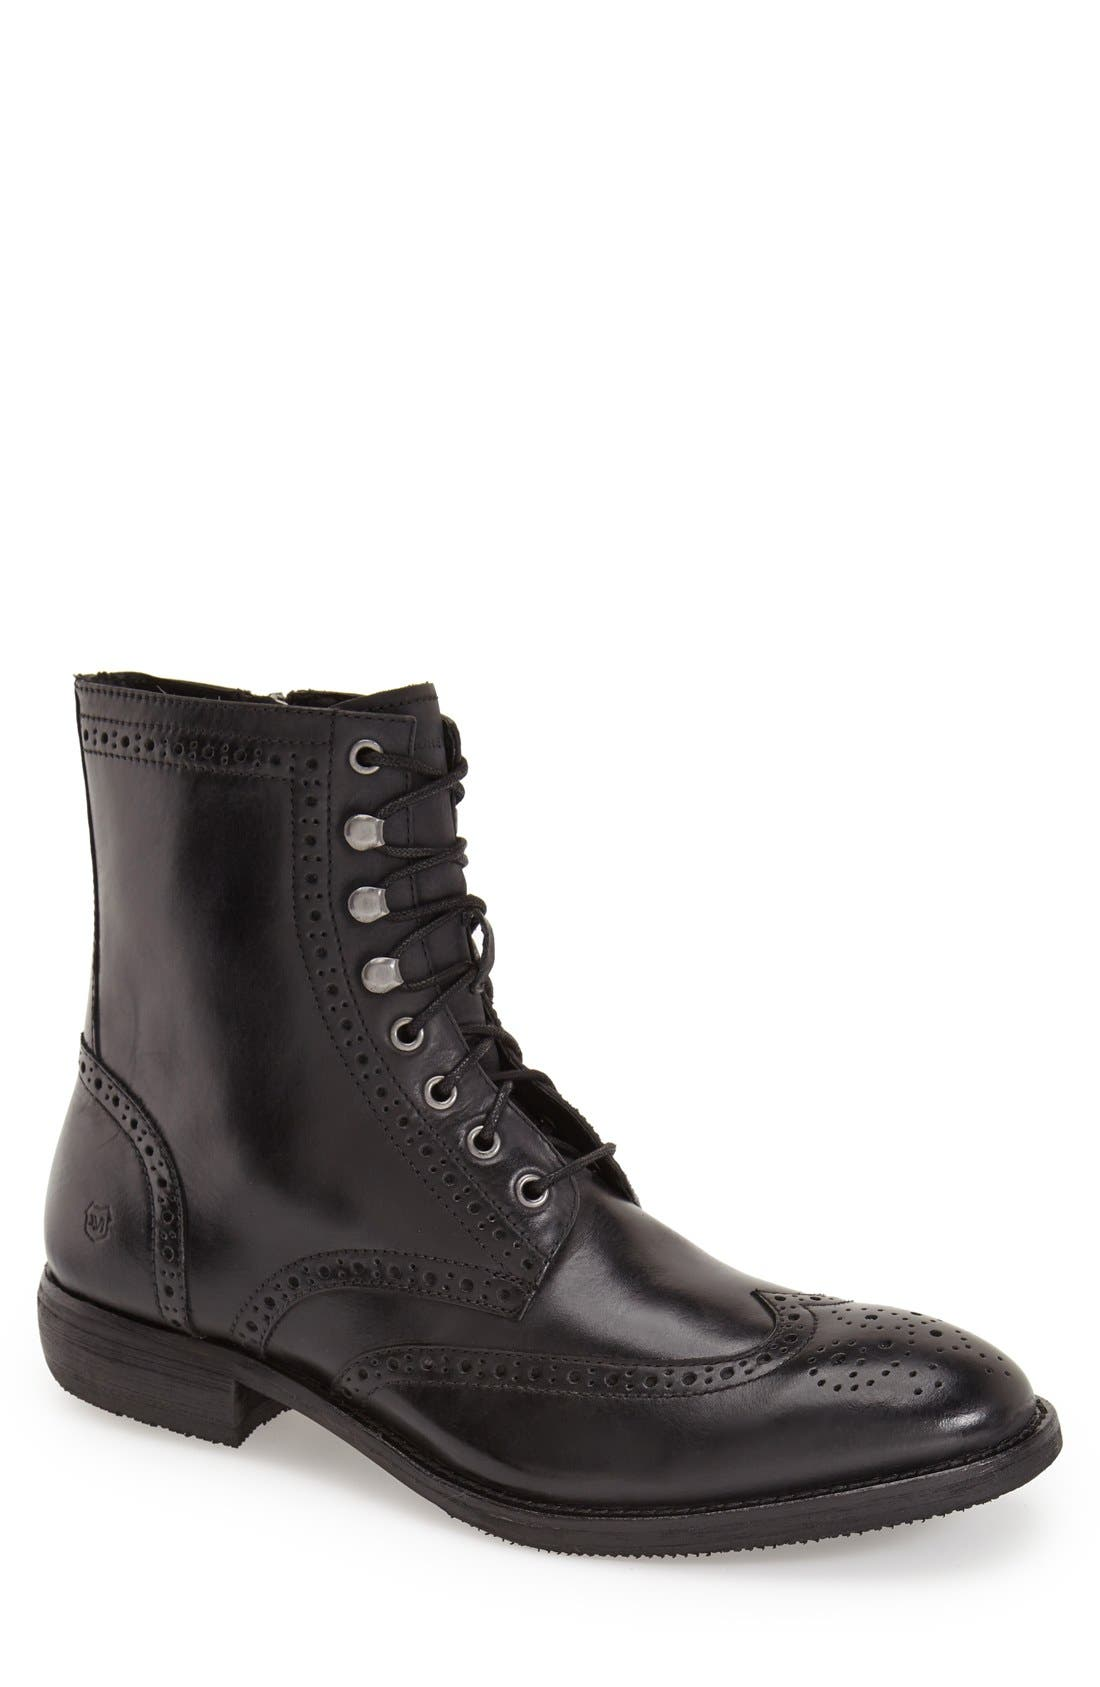 Alternate Image 1 Selected - Andrew Marc 'Hillcrest' Wingtip Boot (Men)